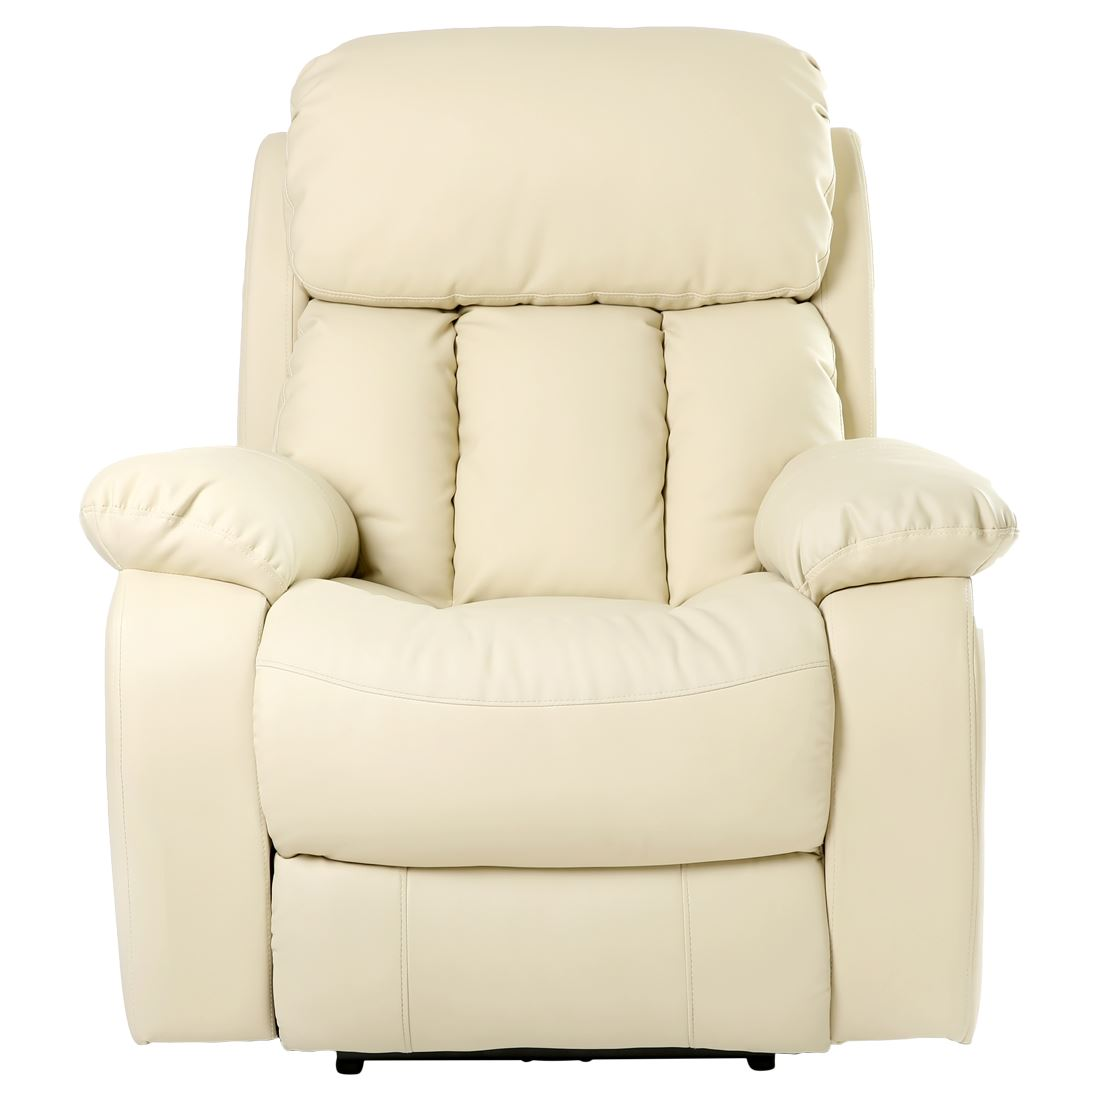 heated sofa recliner cost plus world market bed chester electric leather massage chair